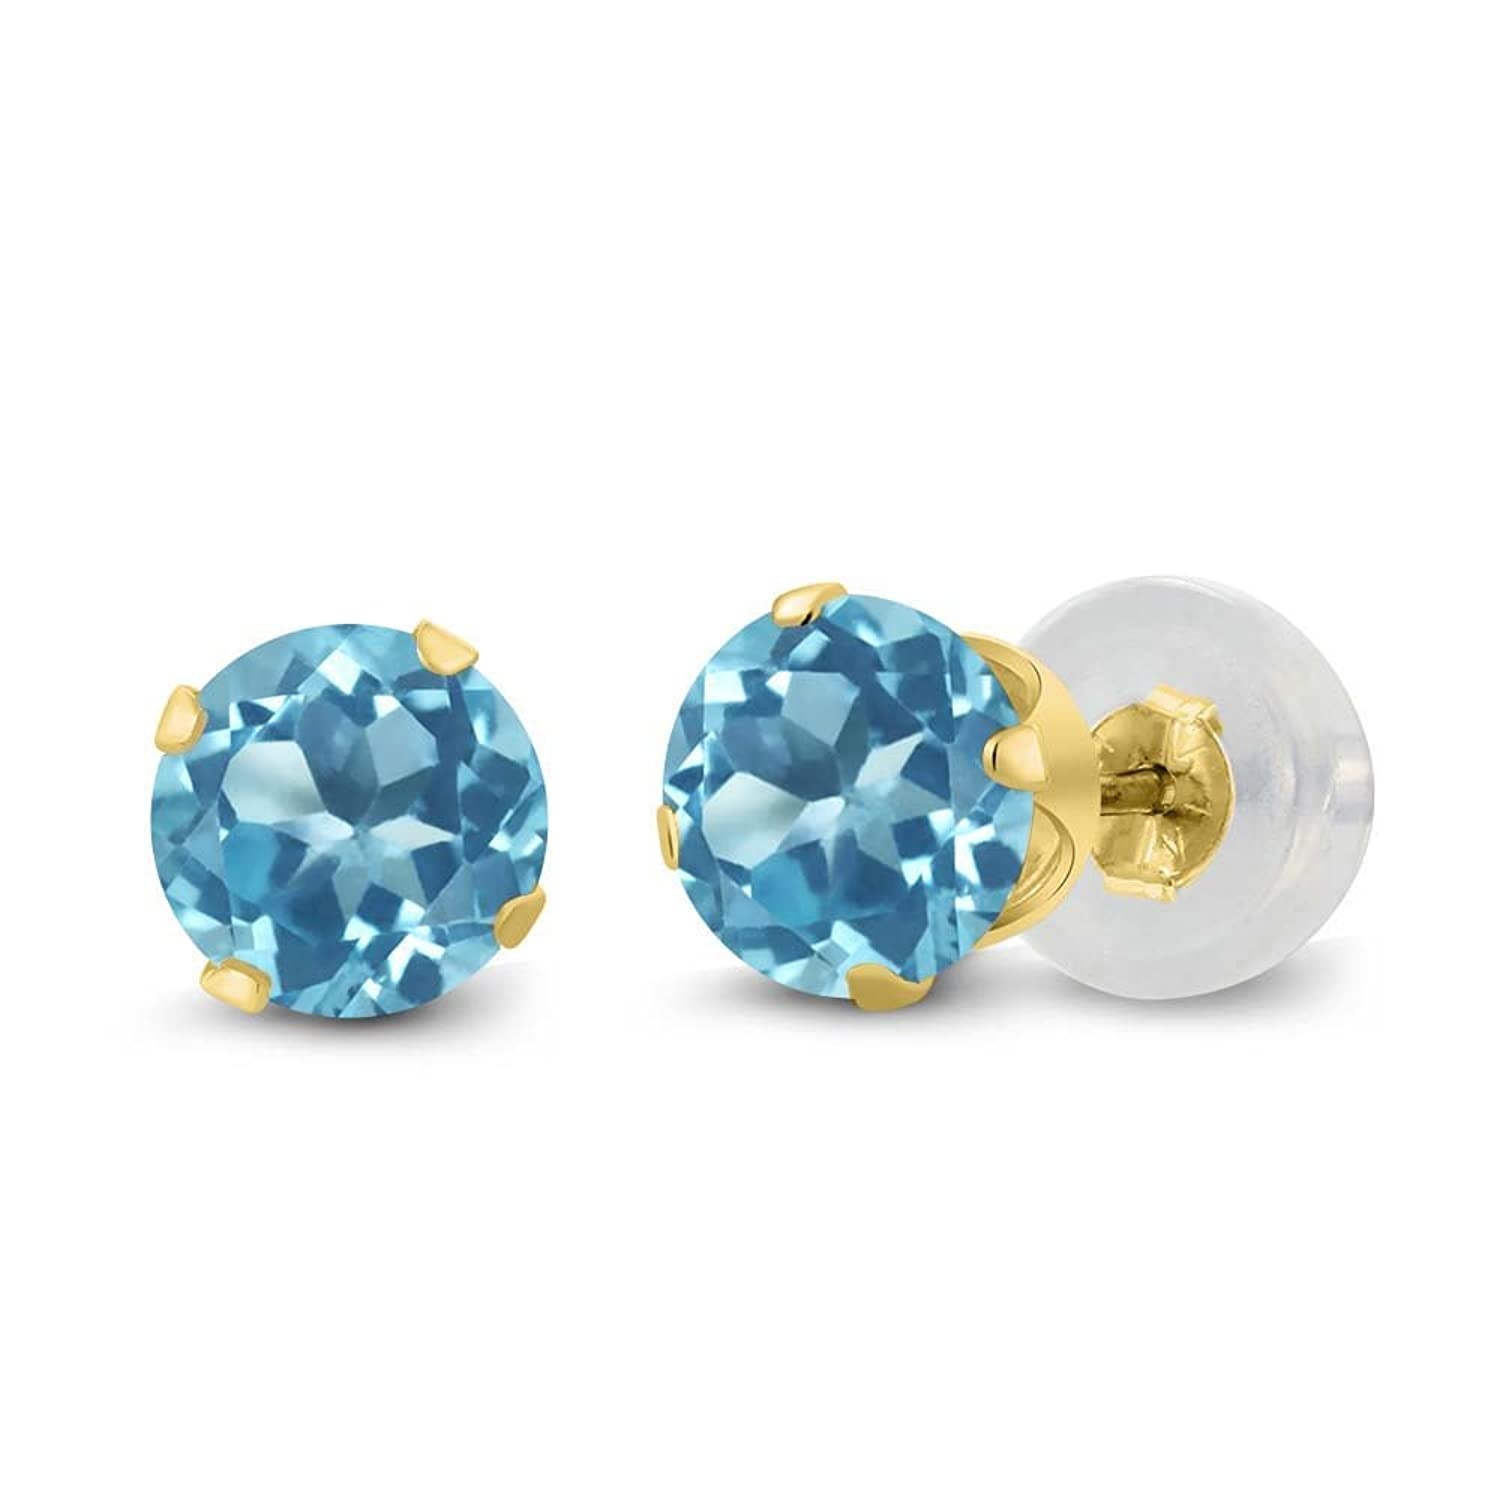 gaia blue earrings products stud yellow with a topaz furst london gold